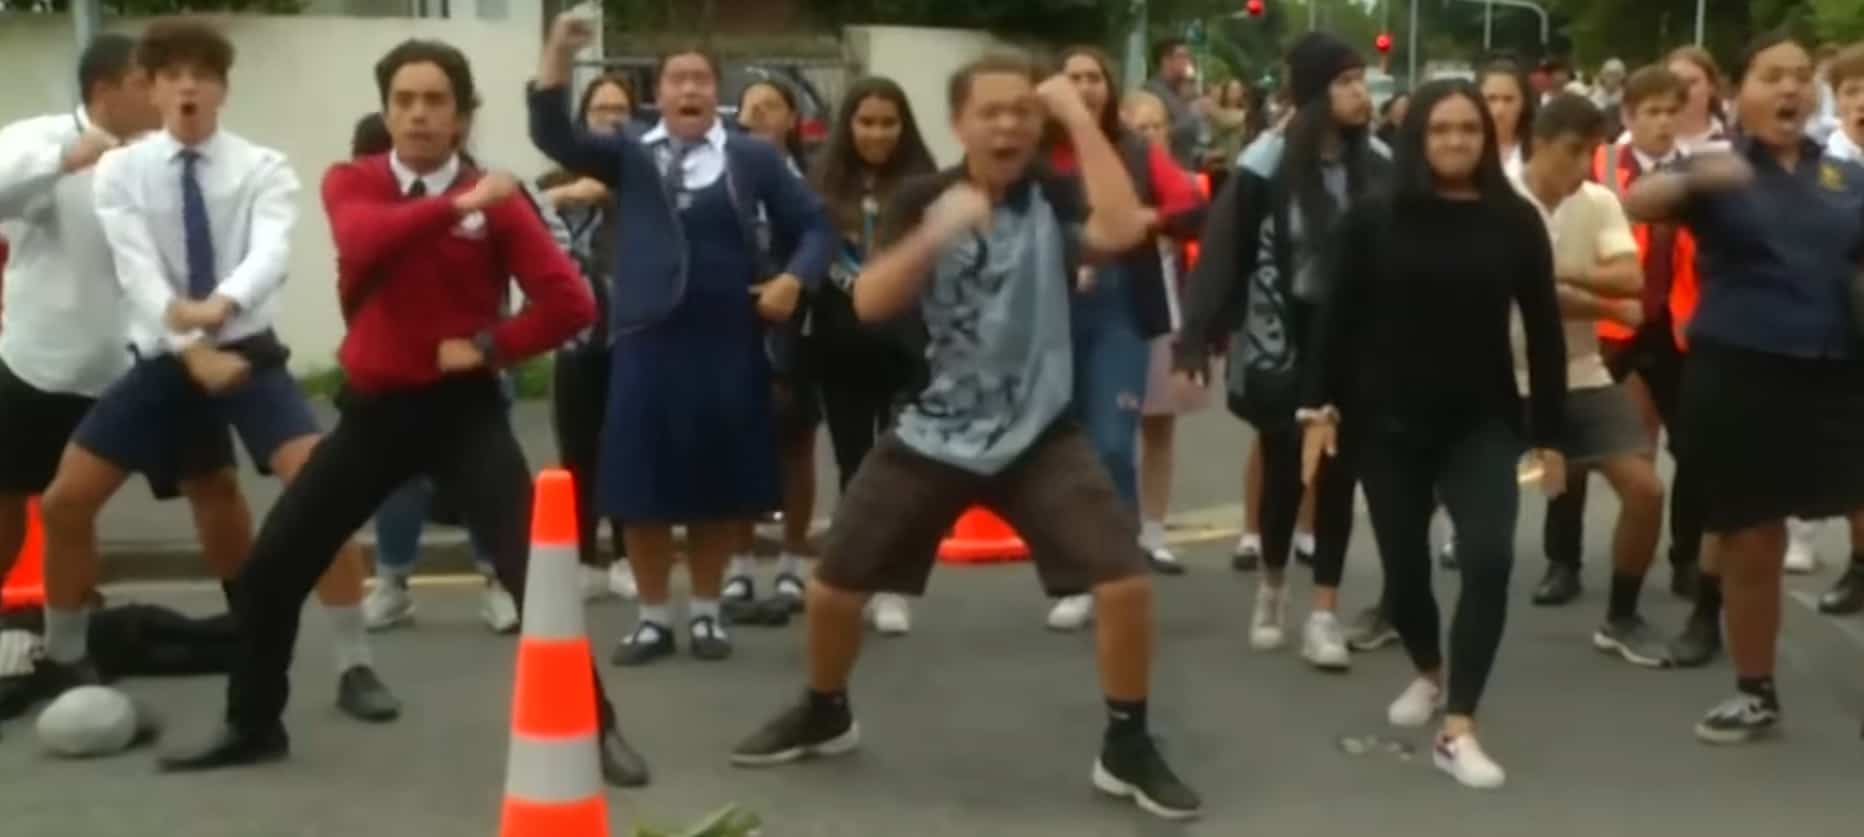 students perform haka